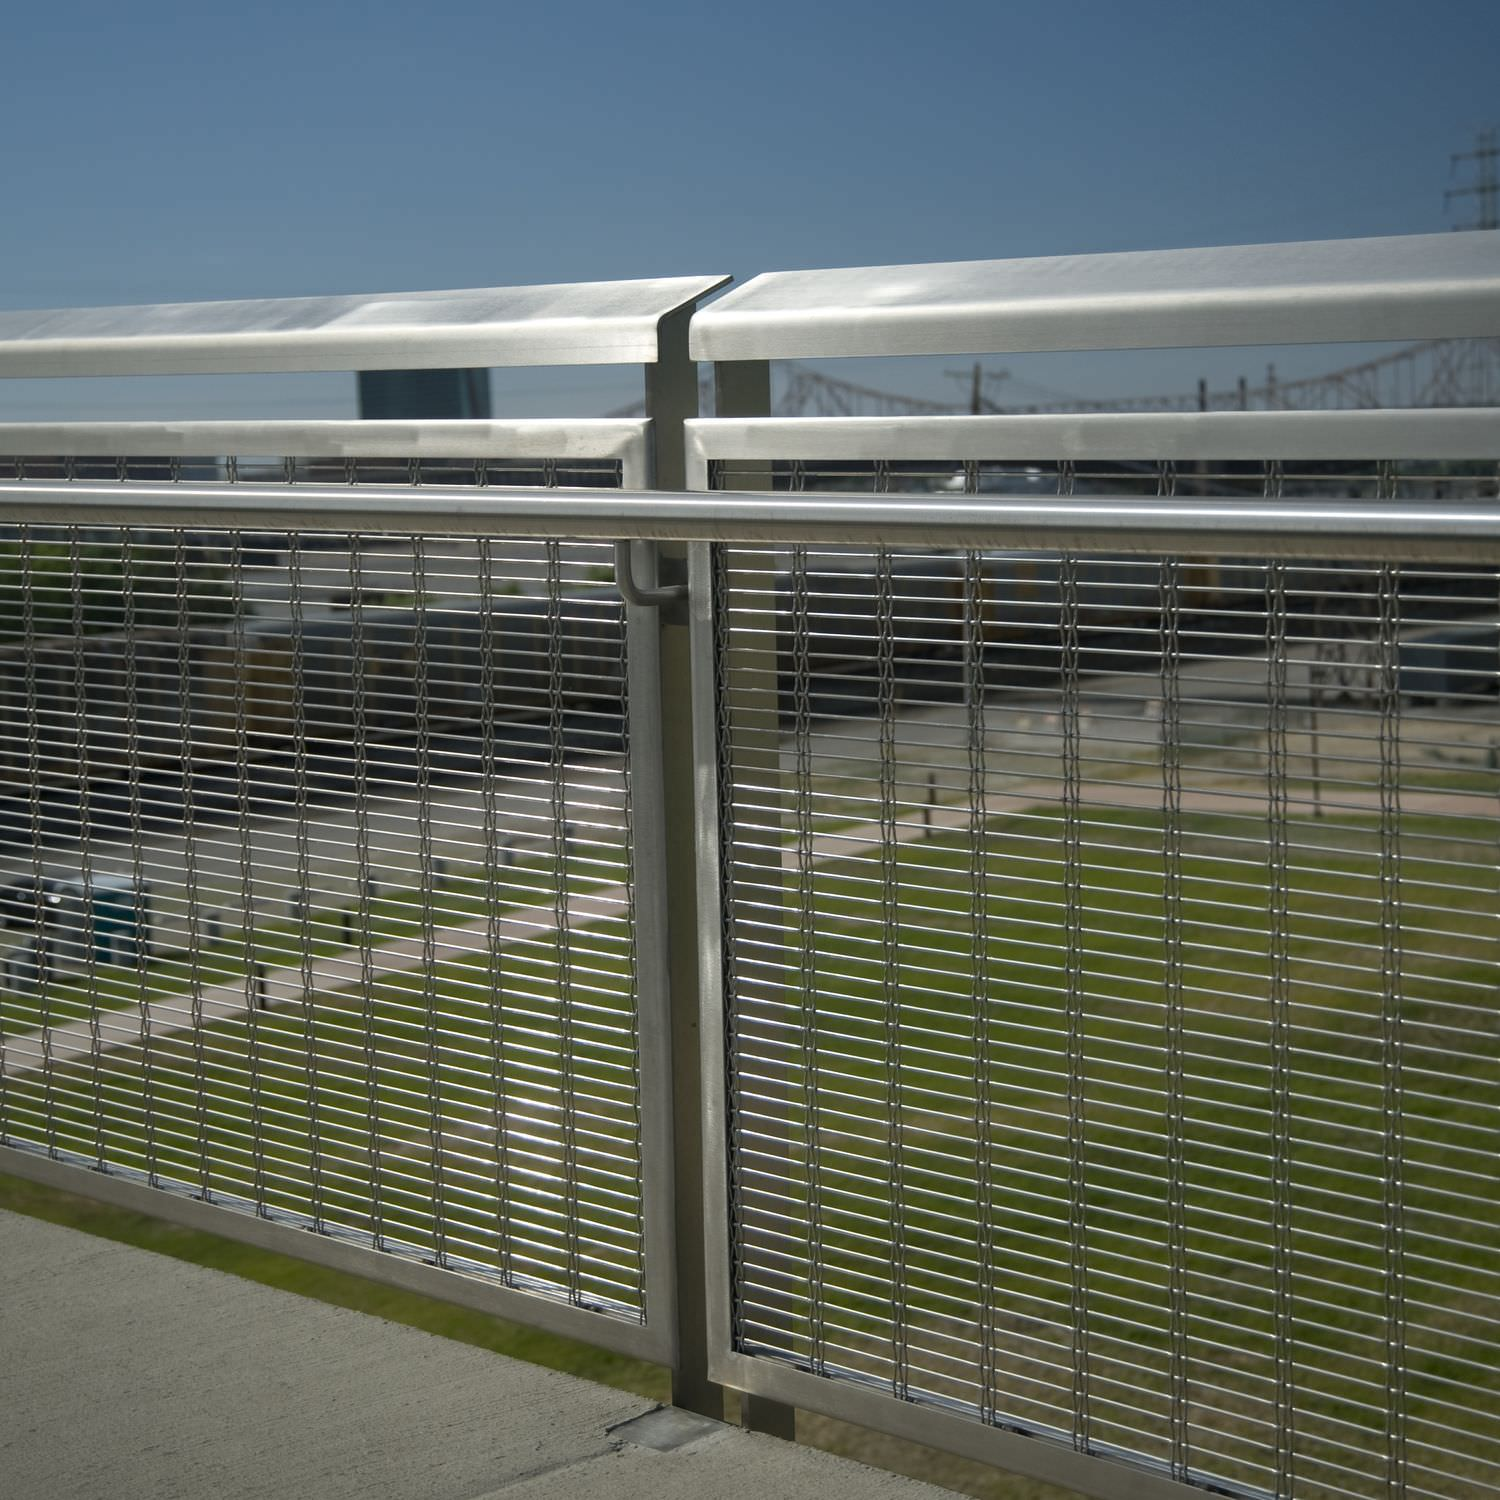 Metal railing / perforated sheet metal / wire mesh / outdoor - DOGLA ...